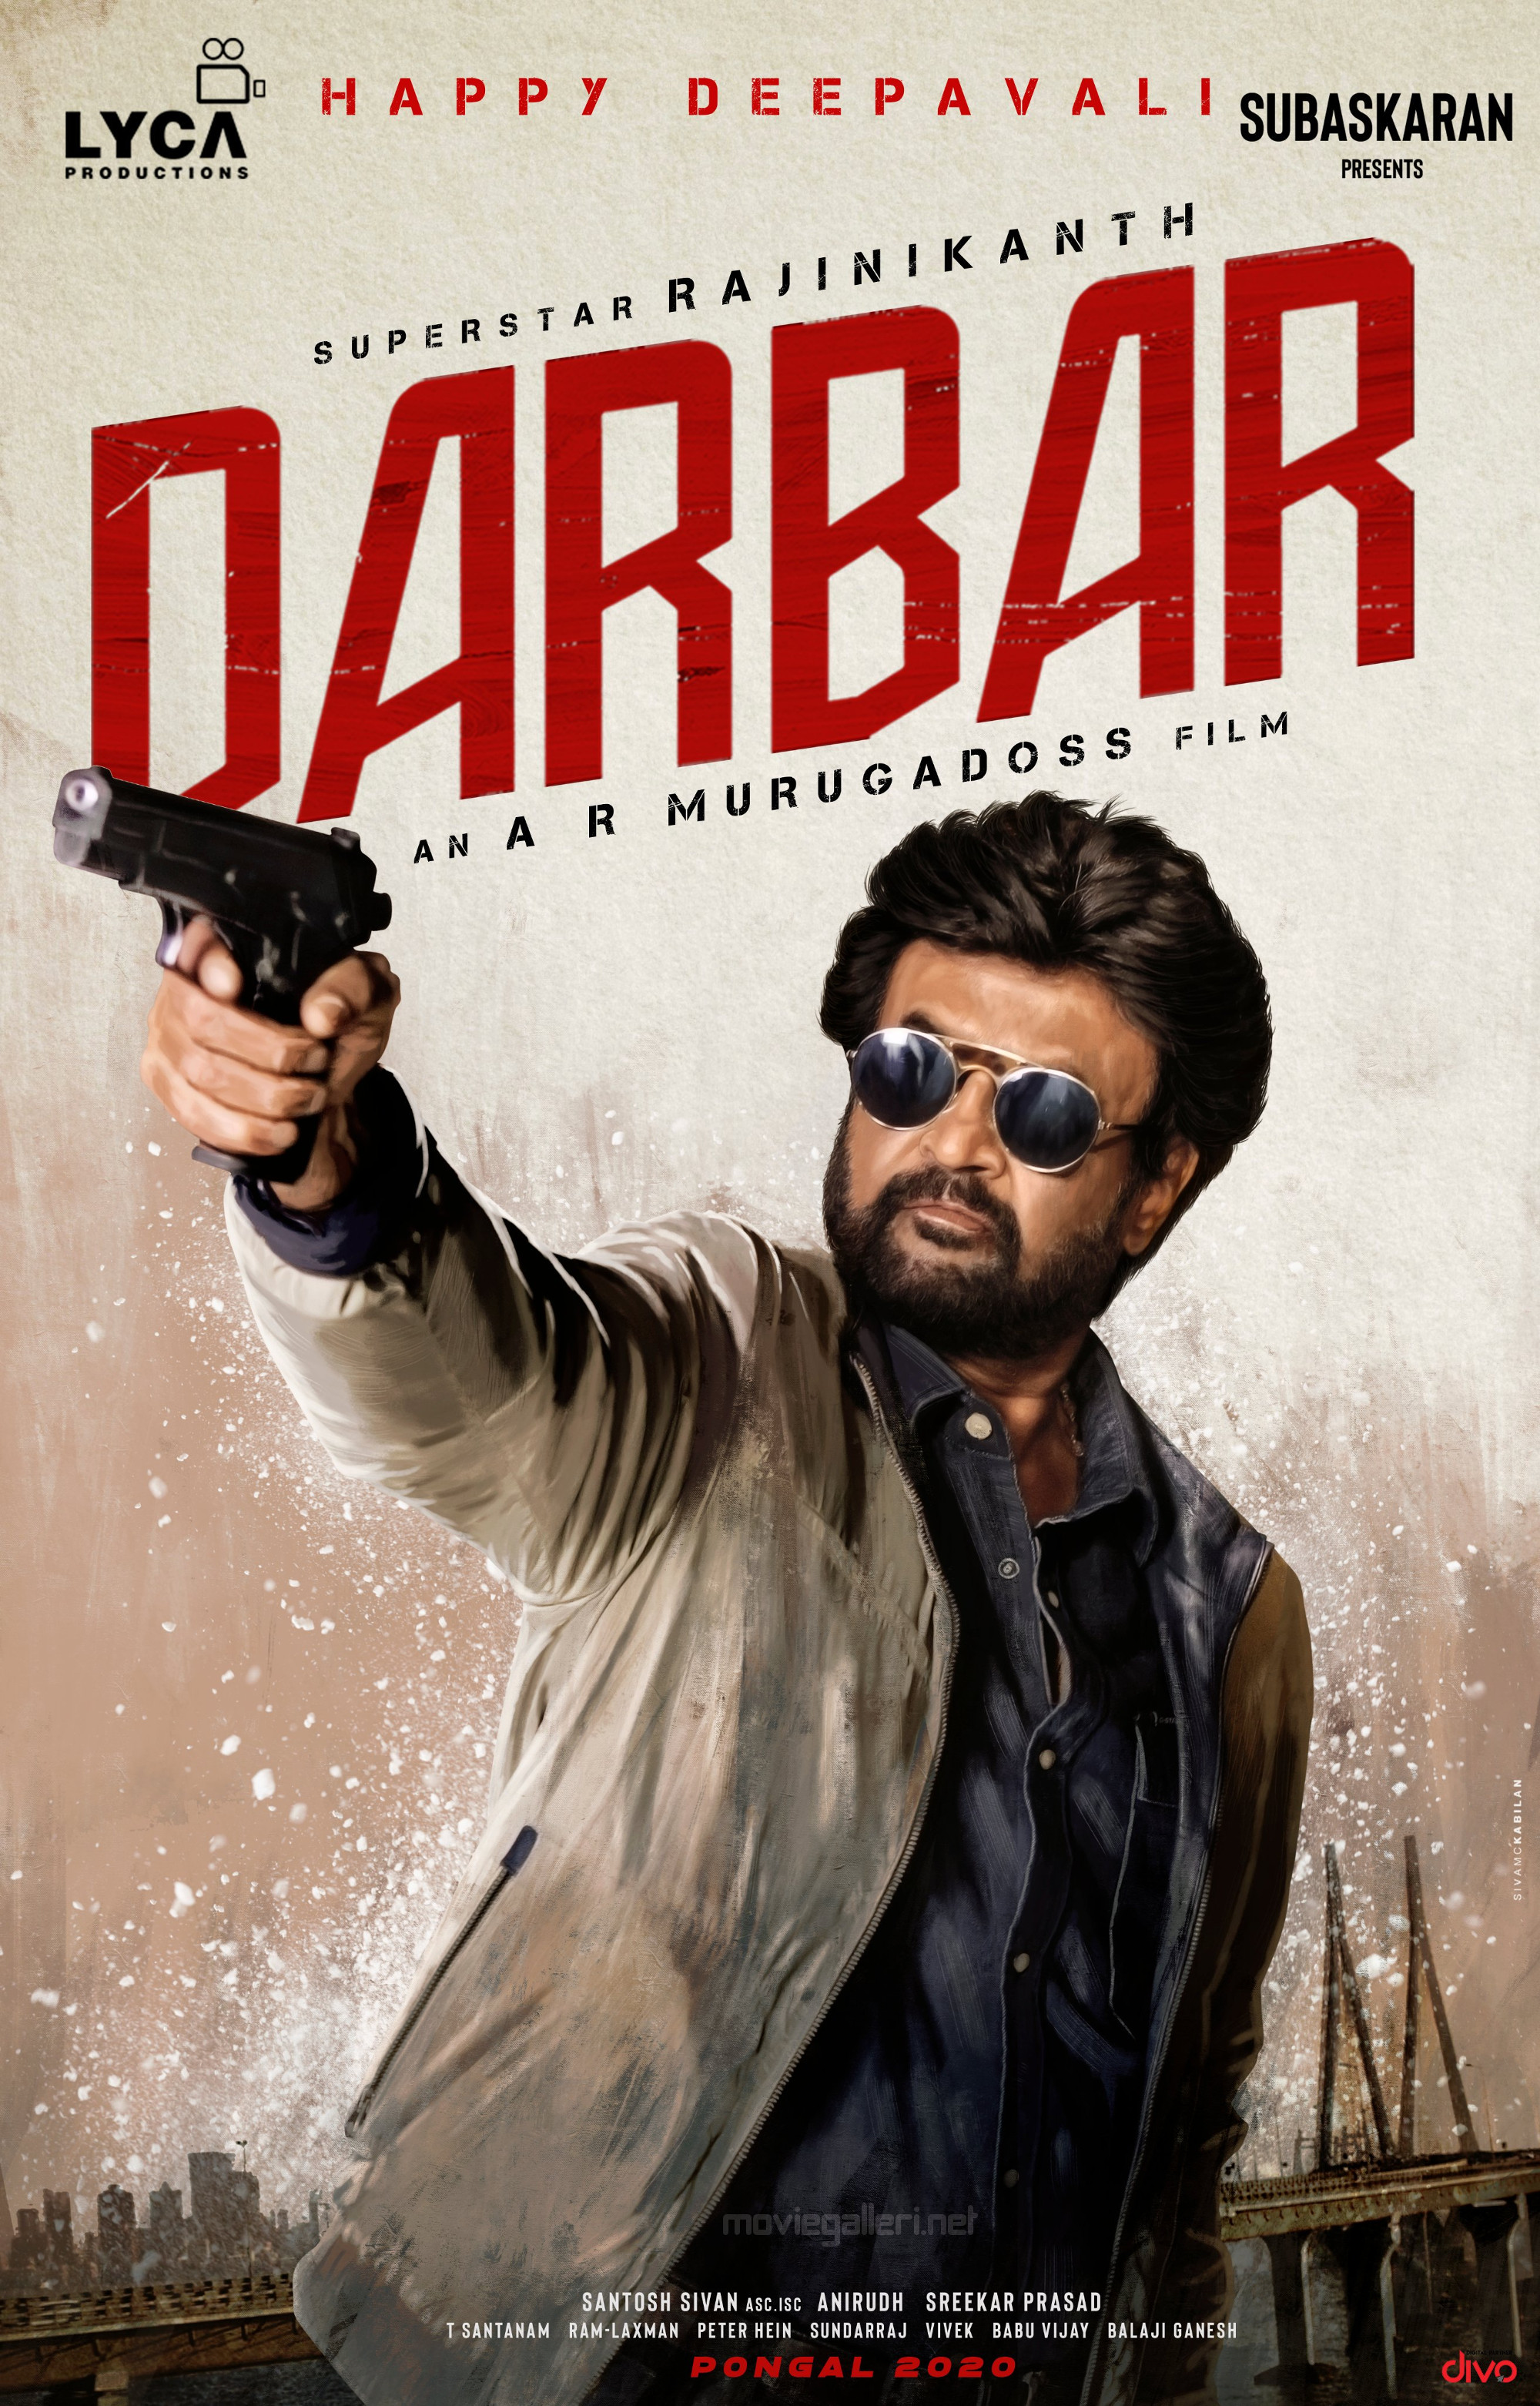 Rajinikanth Darbar Movie Deepavali Wishes Poster HD